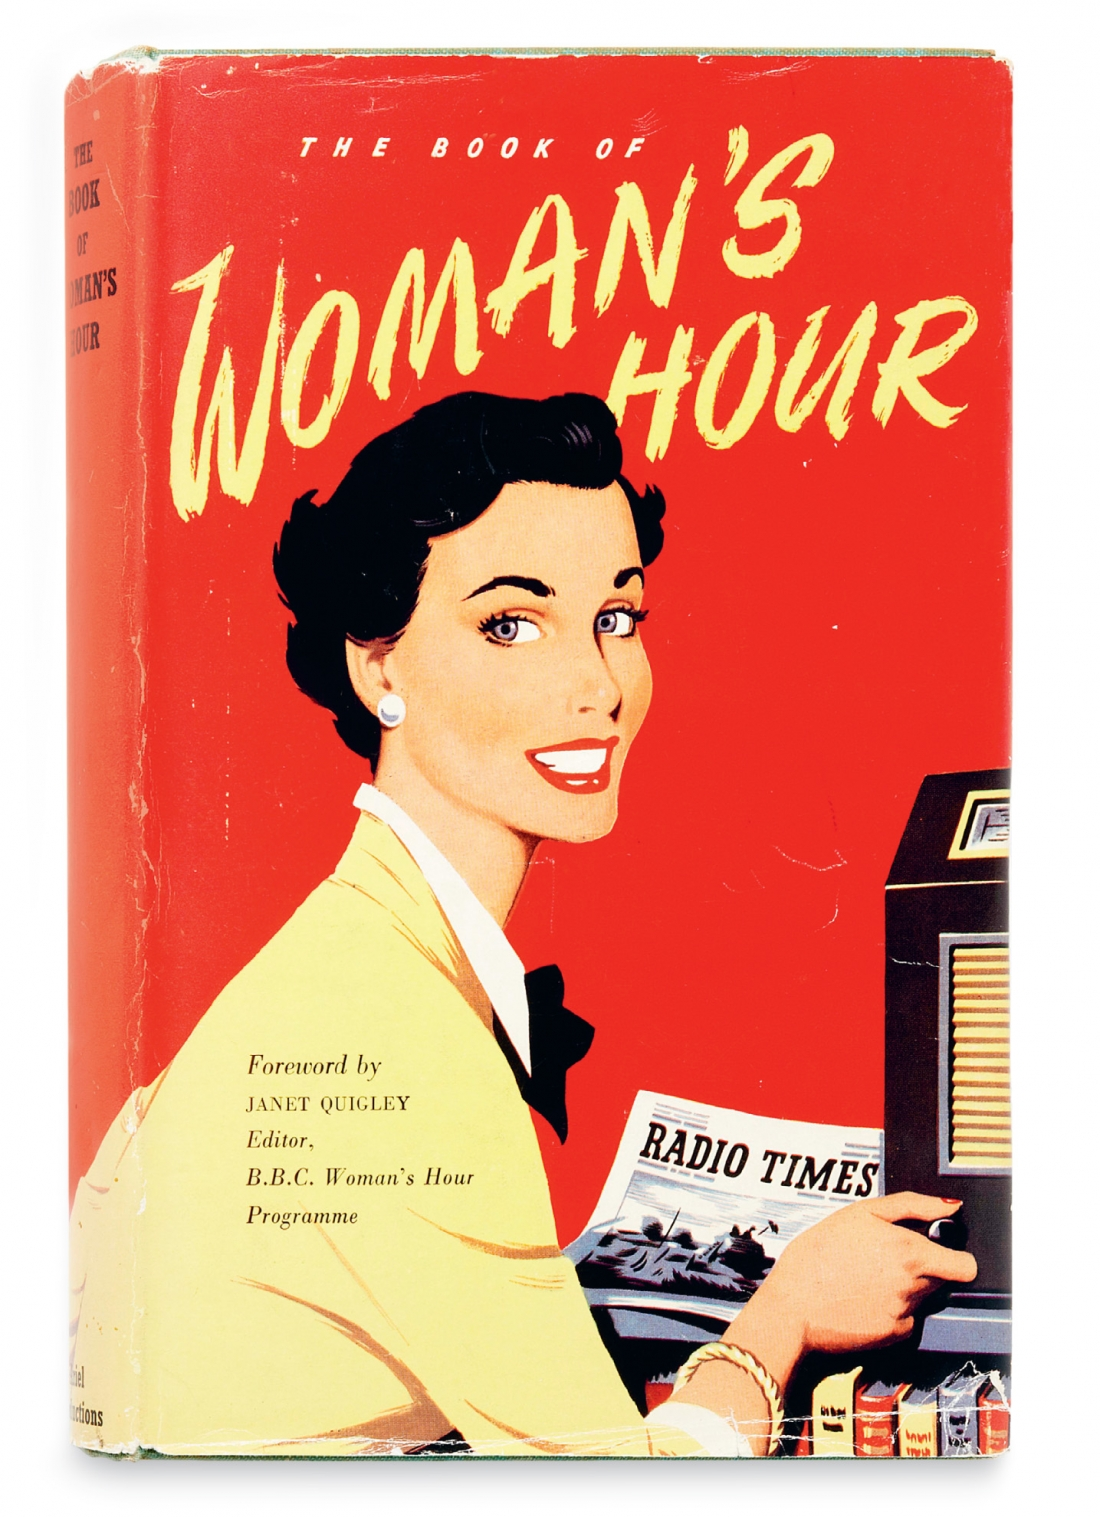 Unknown, The Book of Woman's Hour. Ariel Productions, 1953. From the collection of Martin Salisbury. Photograph, Simon Pask. The BBC radio programme 'Woman's Hour' had a huge audience in 1950s Britain. This related book published by the BBC is filled with top tips for housewives. The cover artist, who would appear to have also been the originator of the playful interior illustrations, is not acknowledged.